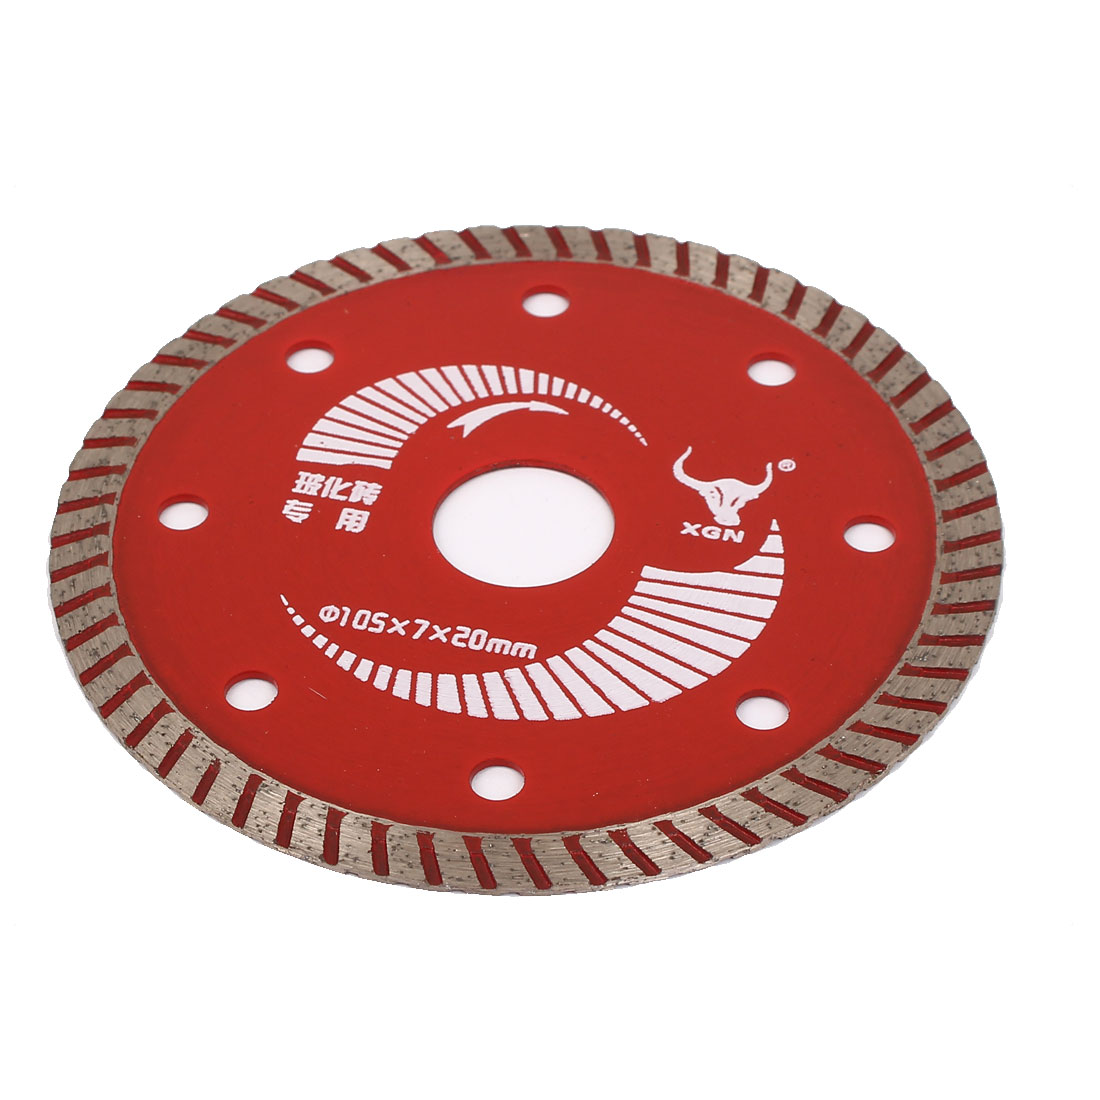 105mmx20mm Diamond Grinding Polishing Wheel Saw Cutter Red Dedicated for Vitrified Tiles